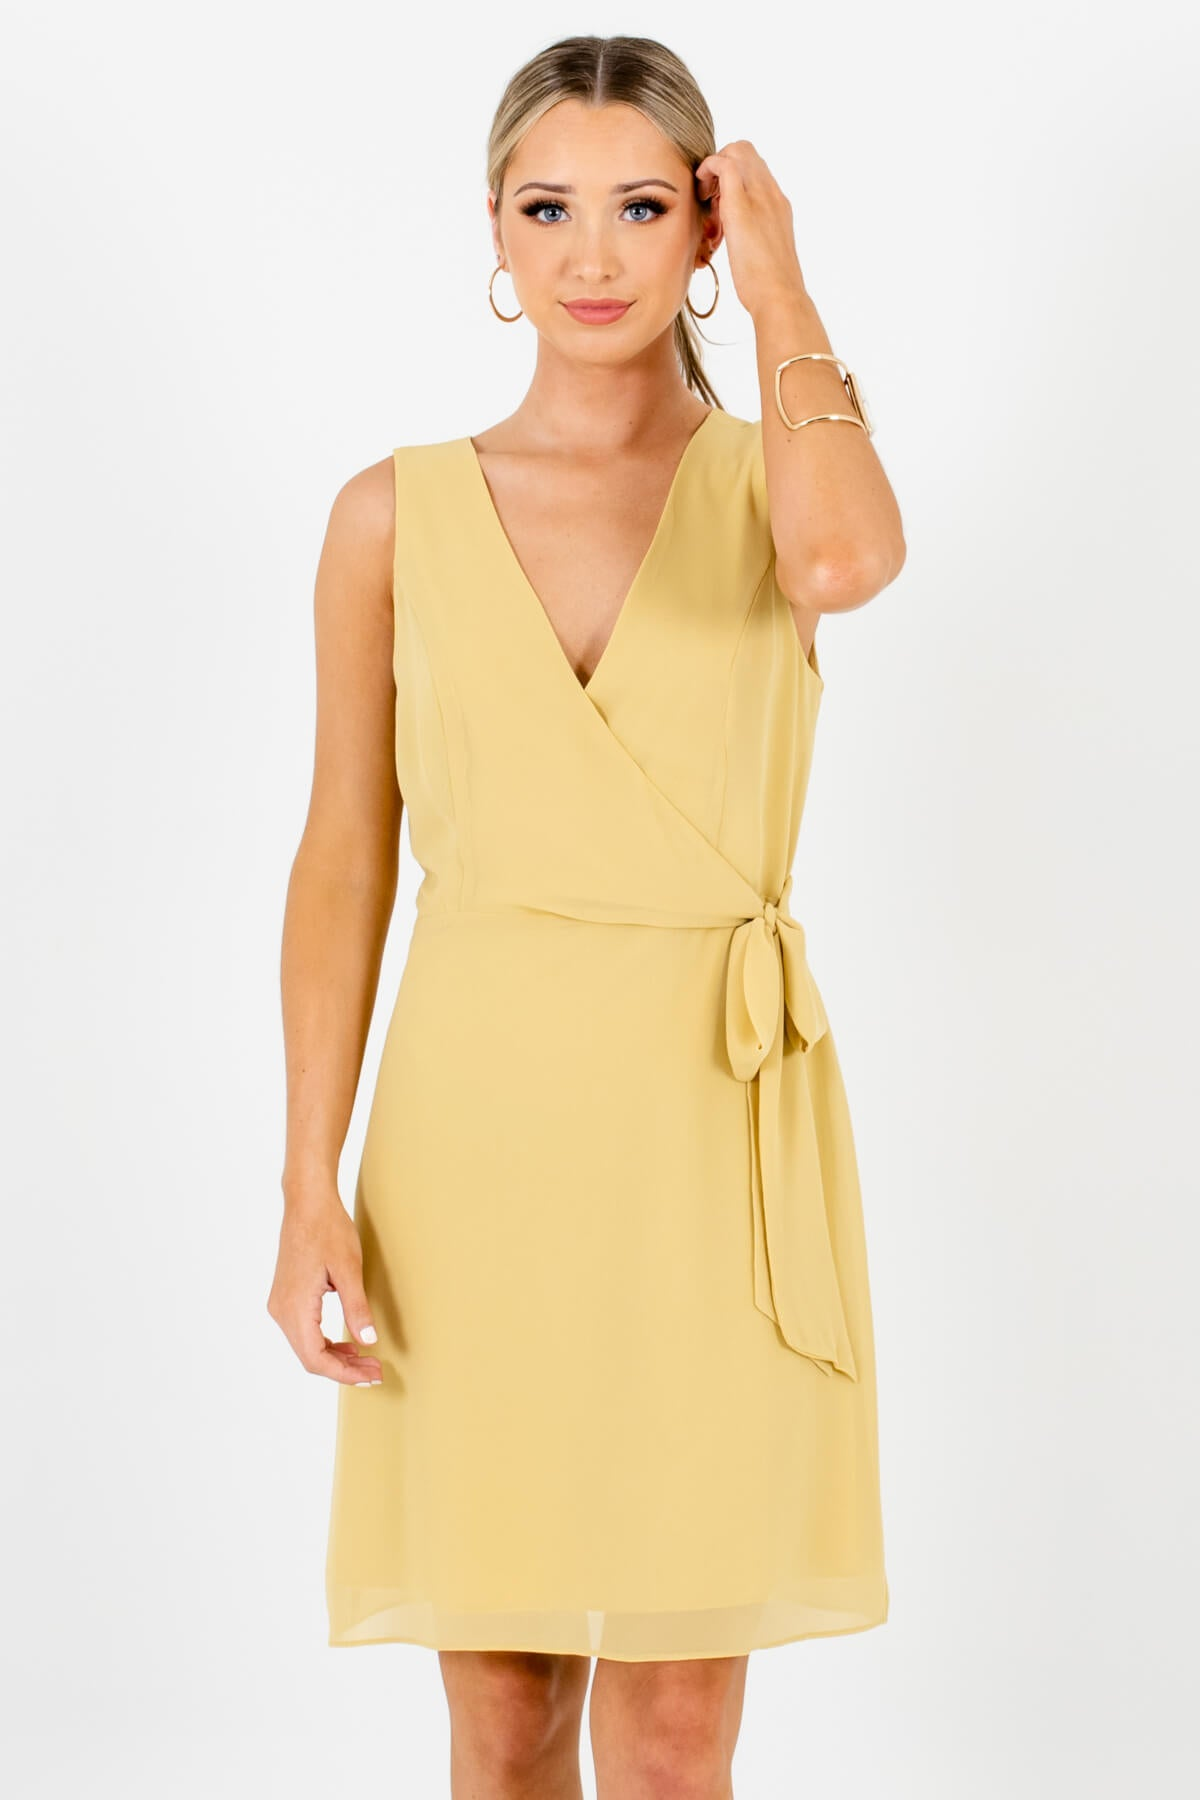 Yellow Faux Wrap Style Boutique Mini Dresses for Women